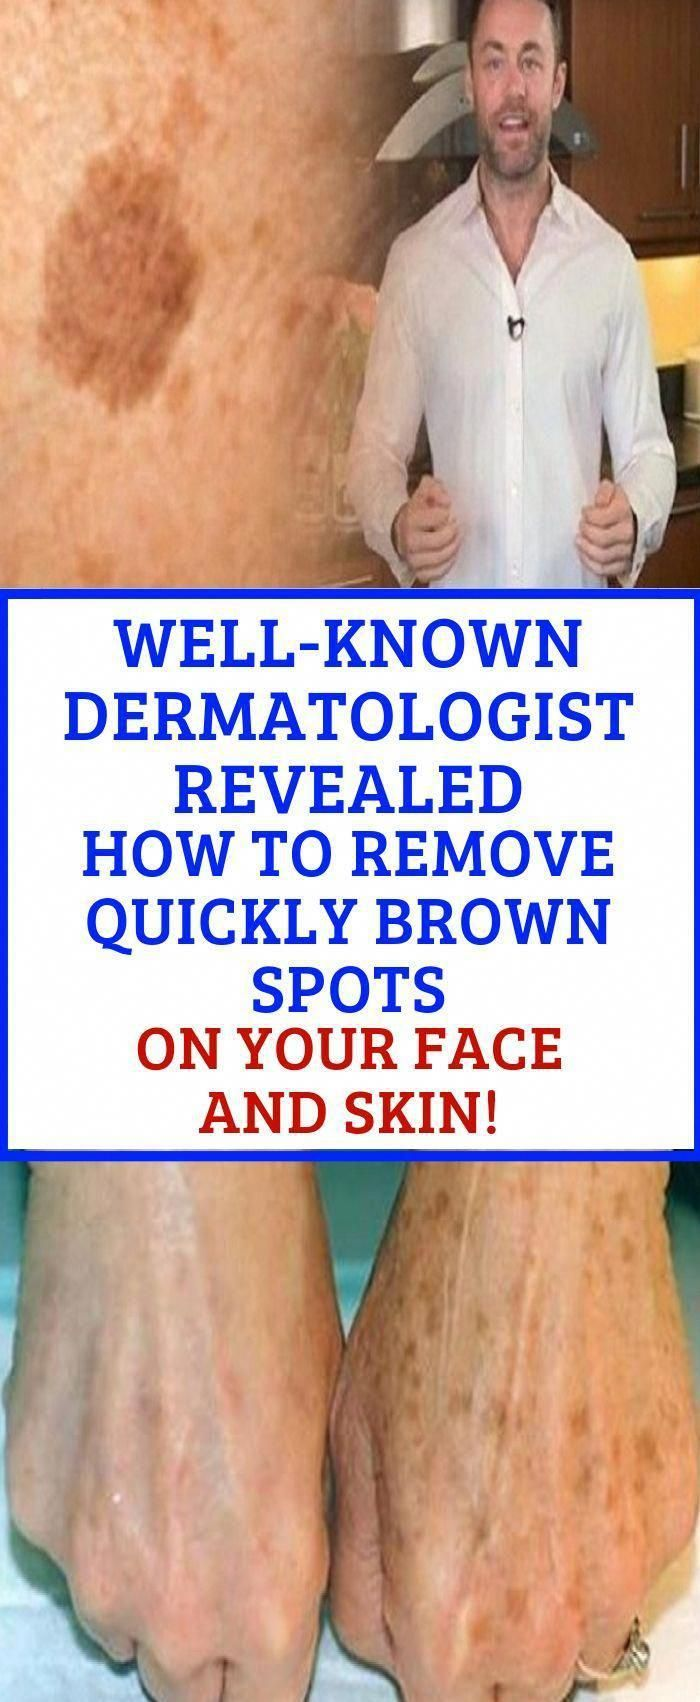 Find Out Who Is Worried About Remove Brown Spots And Why You Should Pay Attention Healthy Medicine Tips In 2020 Brown Spots On Face Brown Spots On Skin Spots On Face